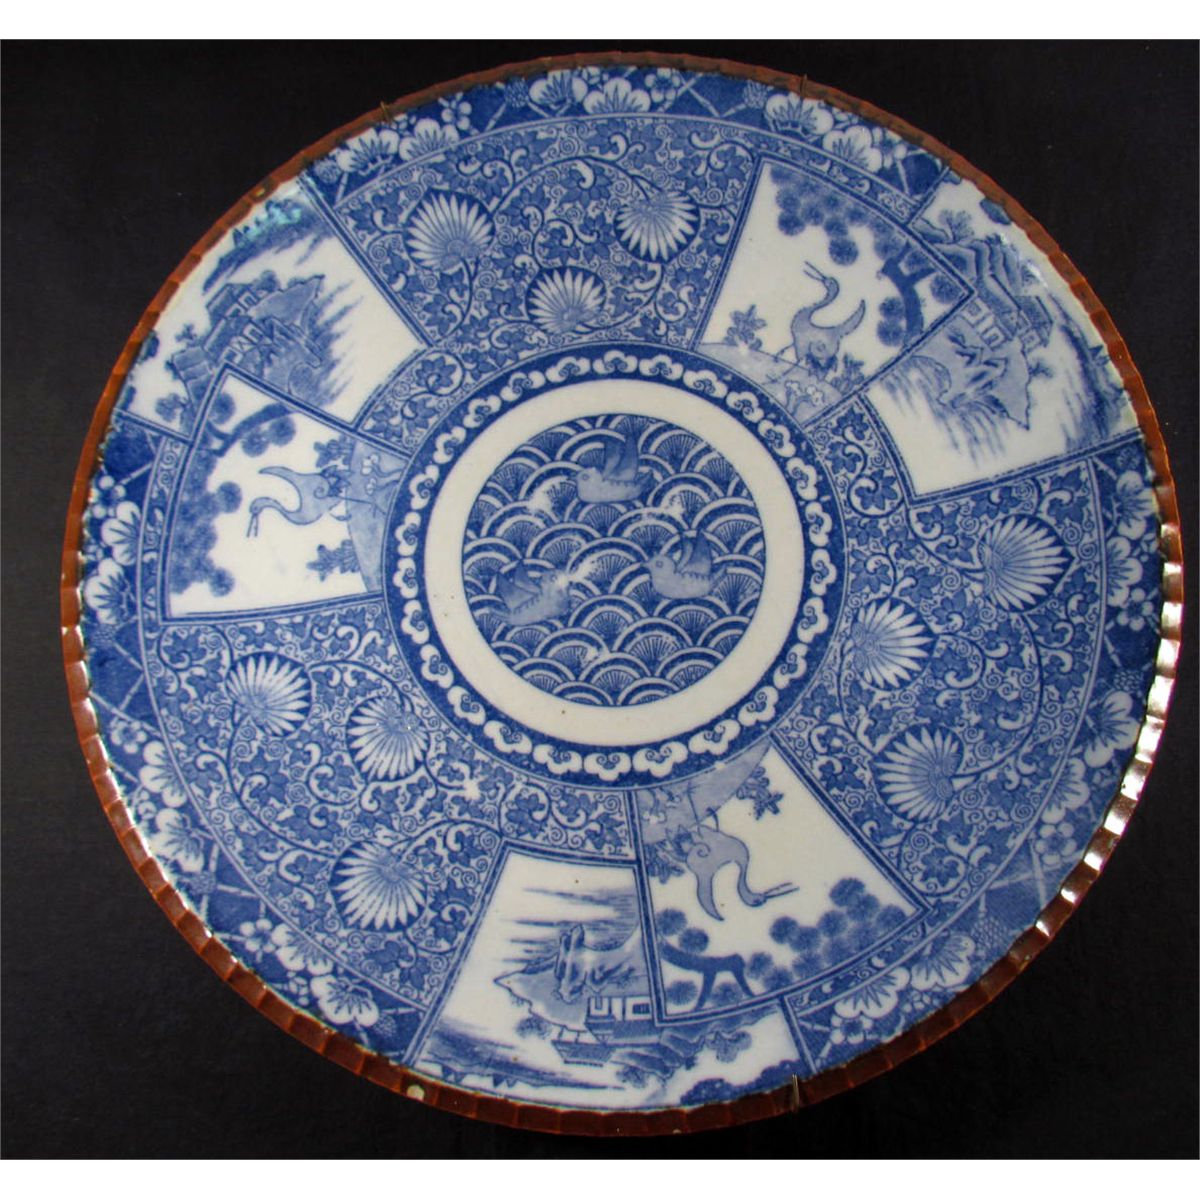 & ANTIQUE CHINESE PORCELAIN PLATE